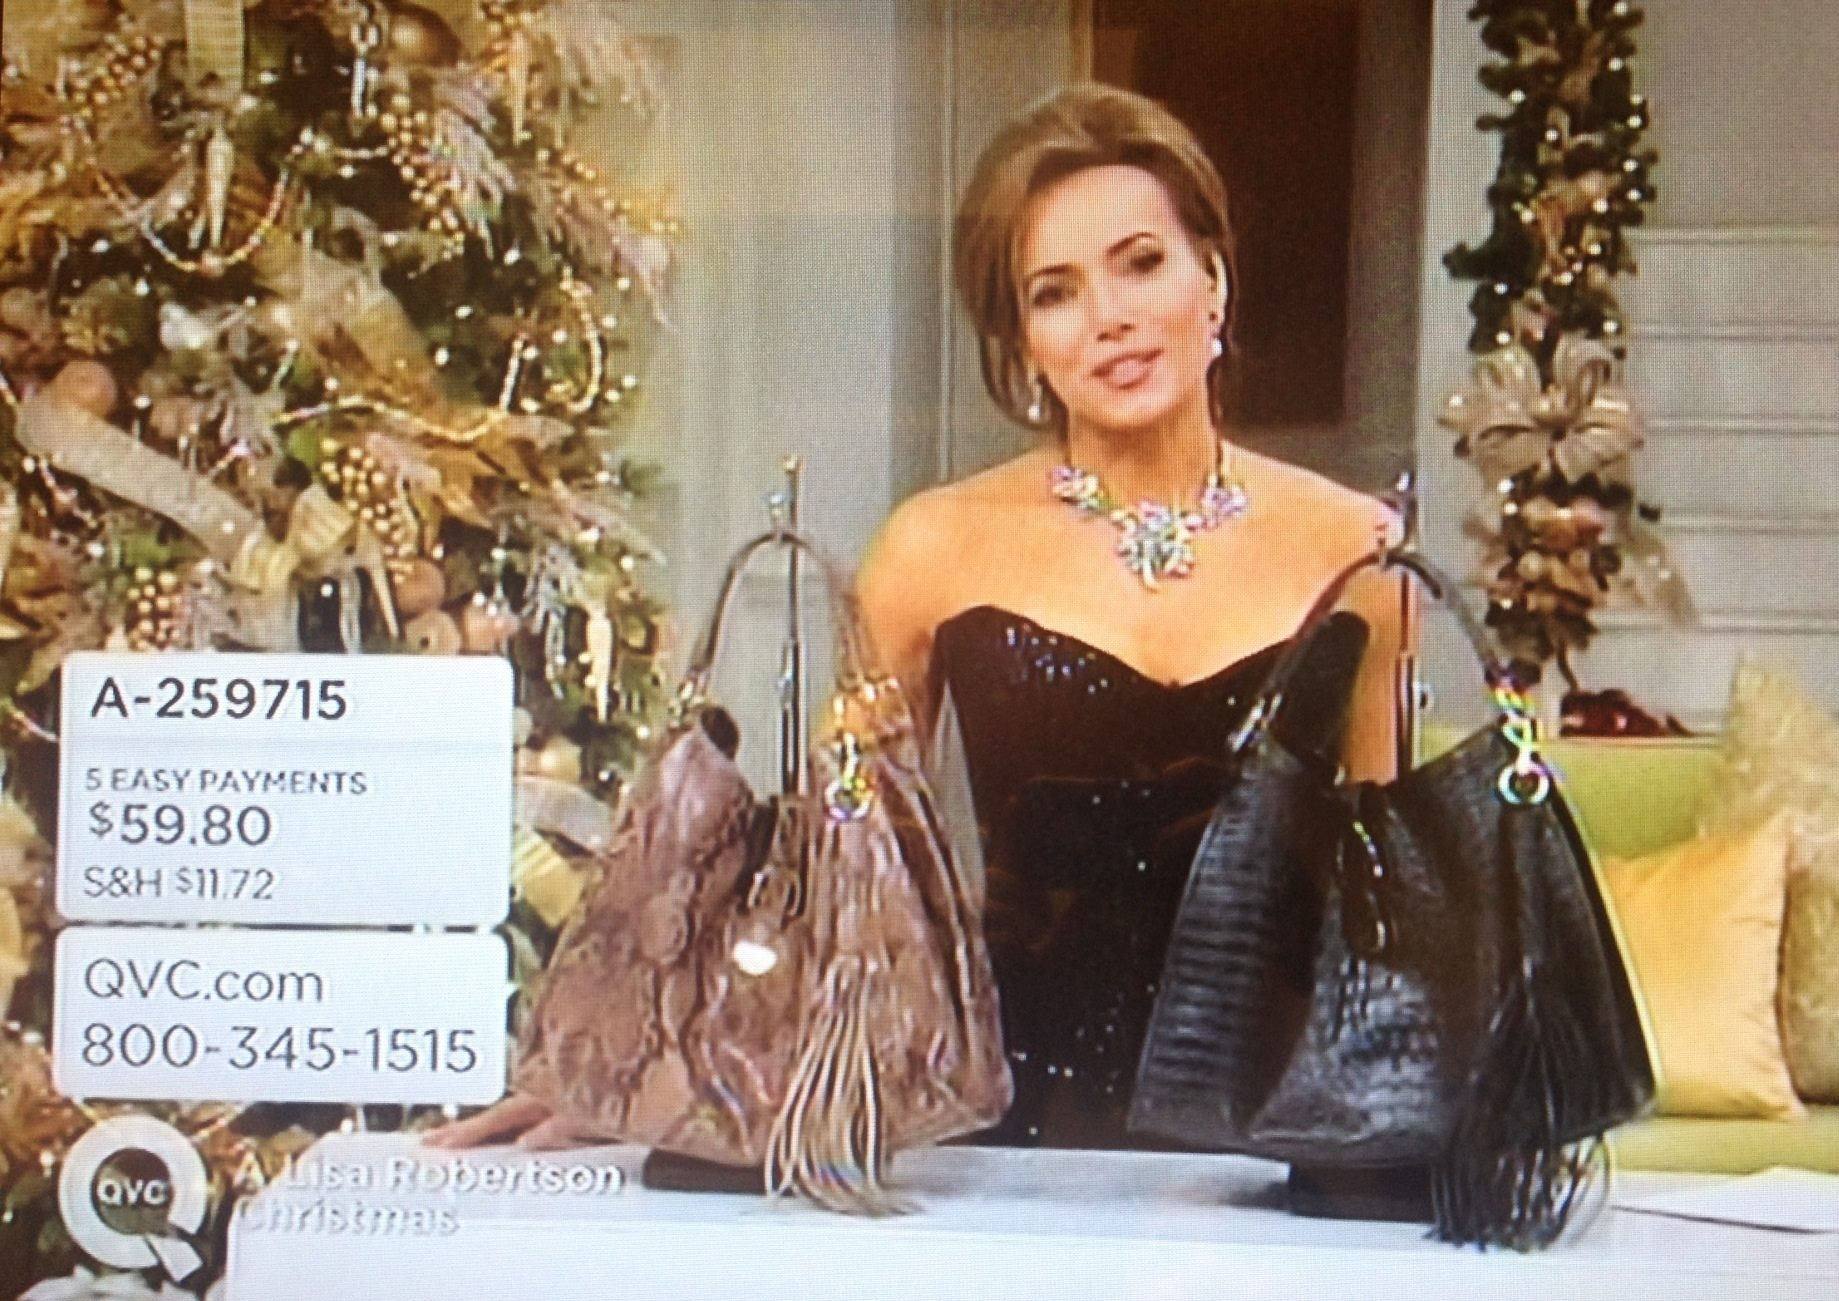 Qvc Masson December 2014 Homeshoppingista 39s Blog By Linda Moss